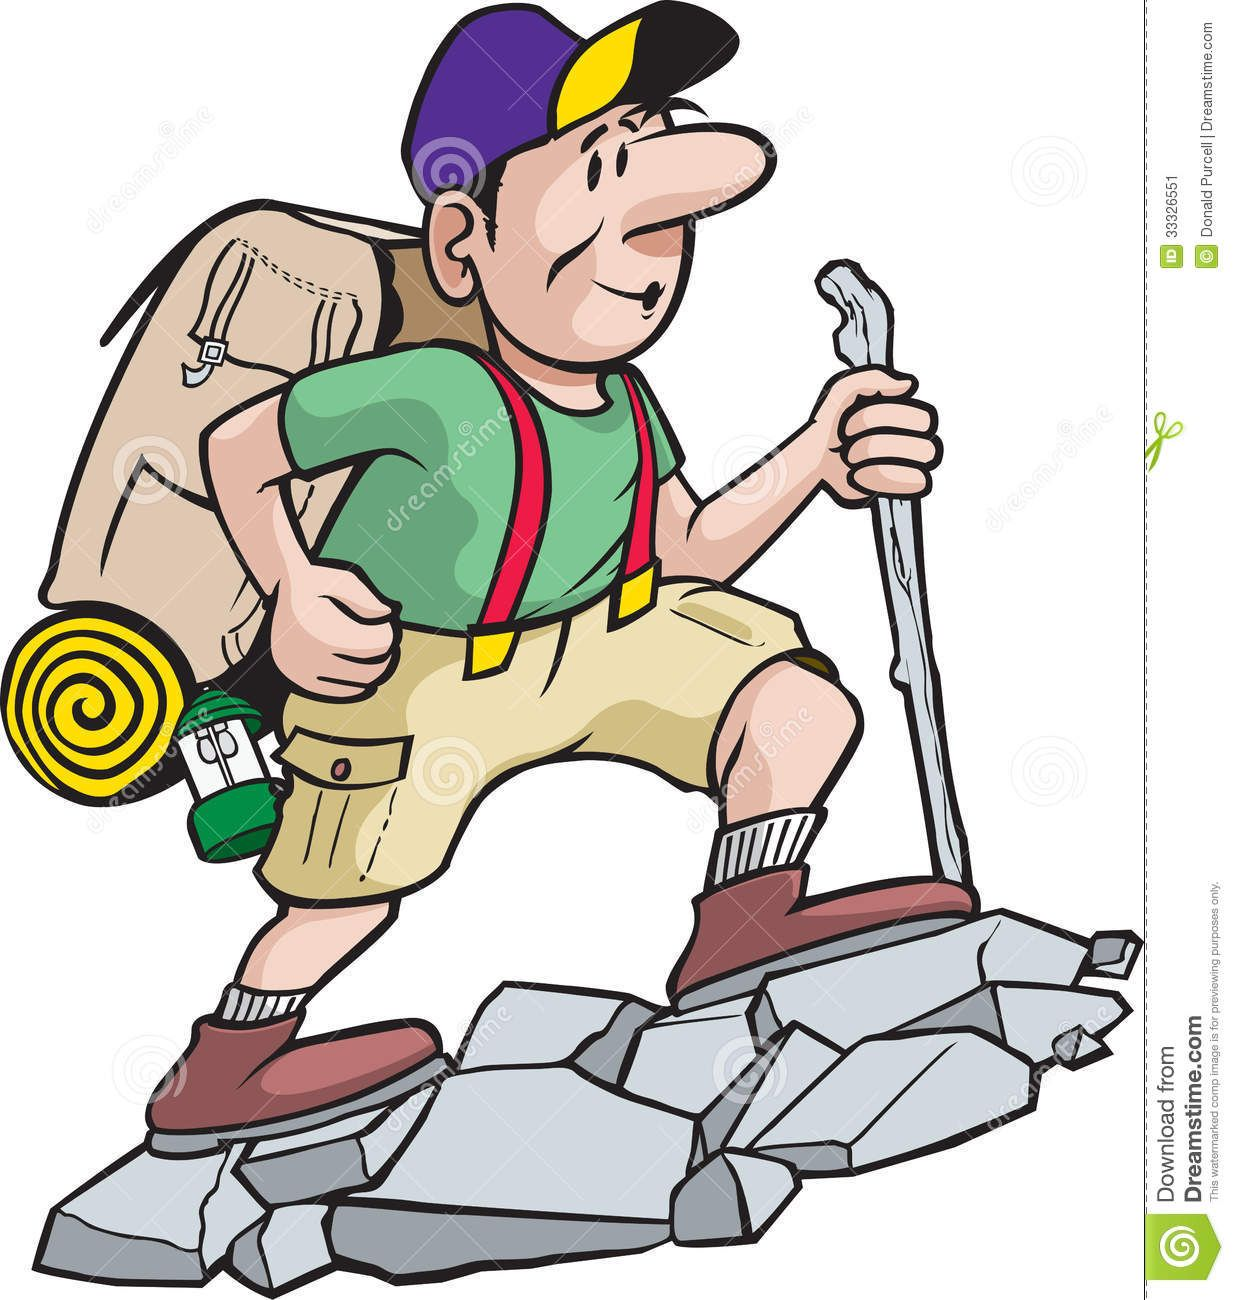 Image result for mountain. Hiker clipart